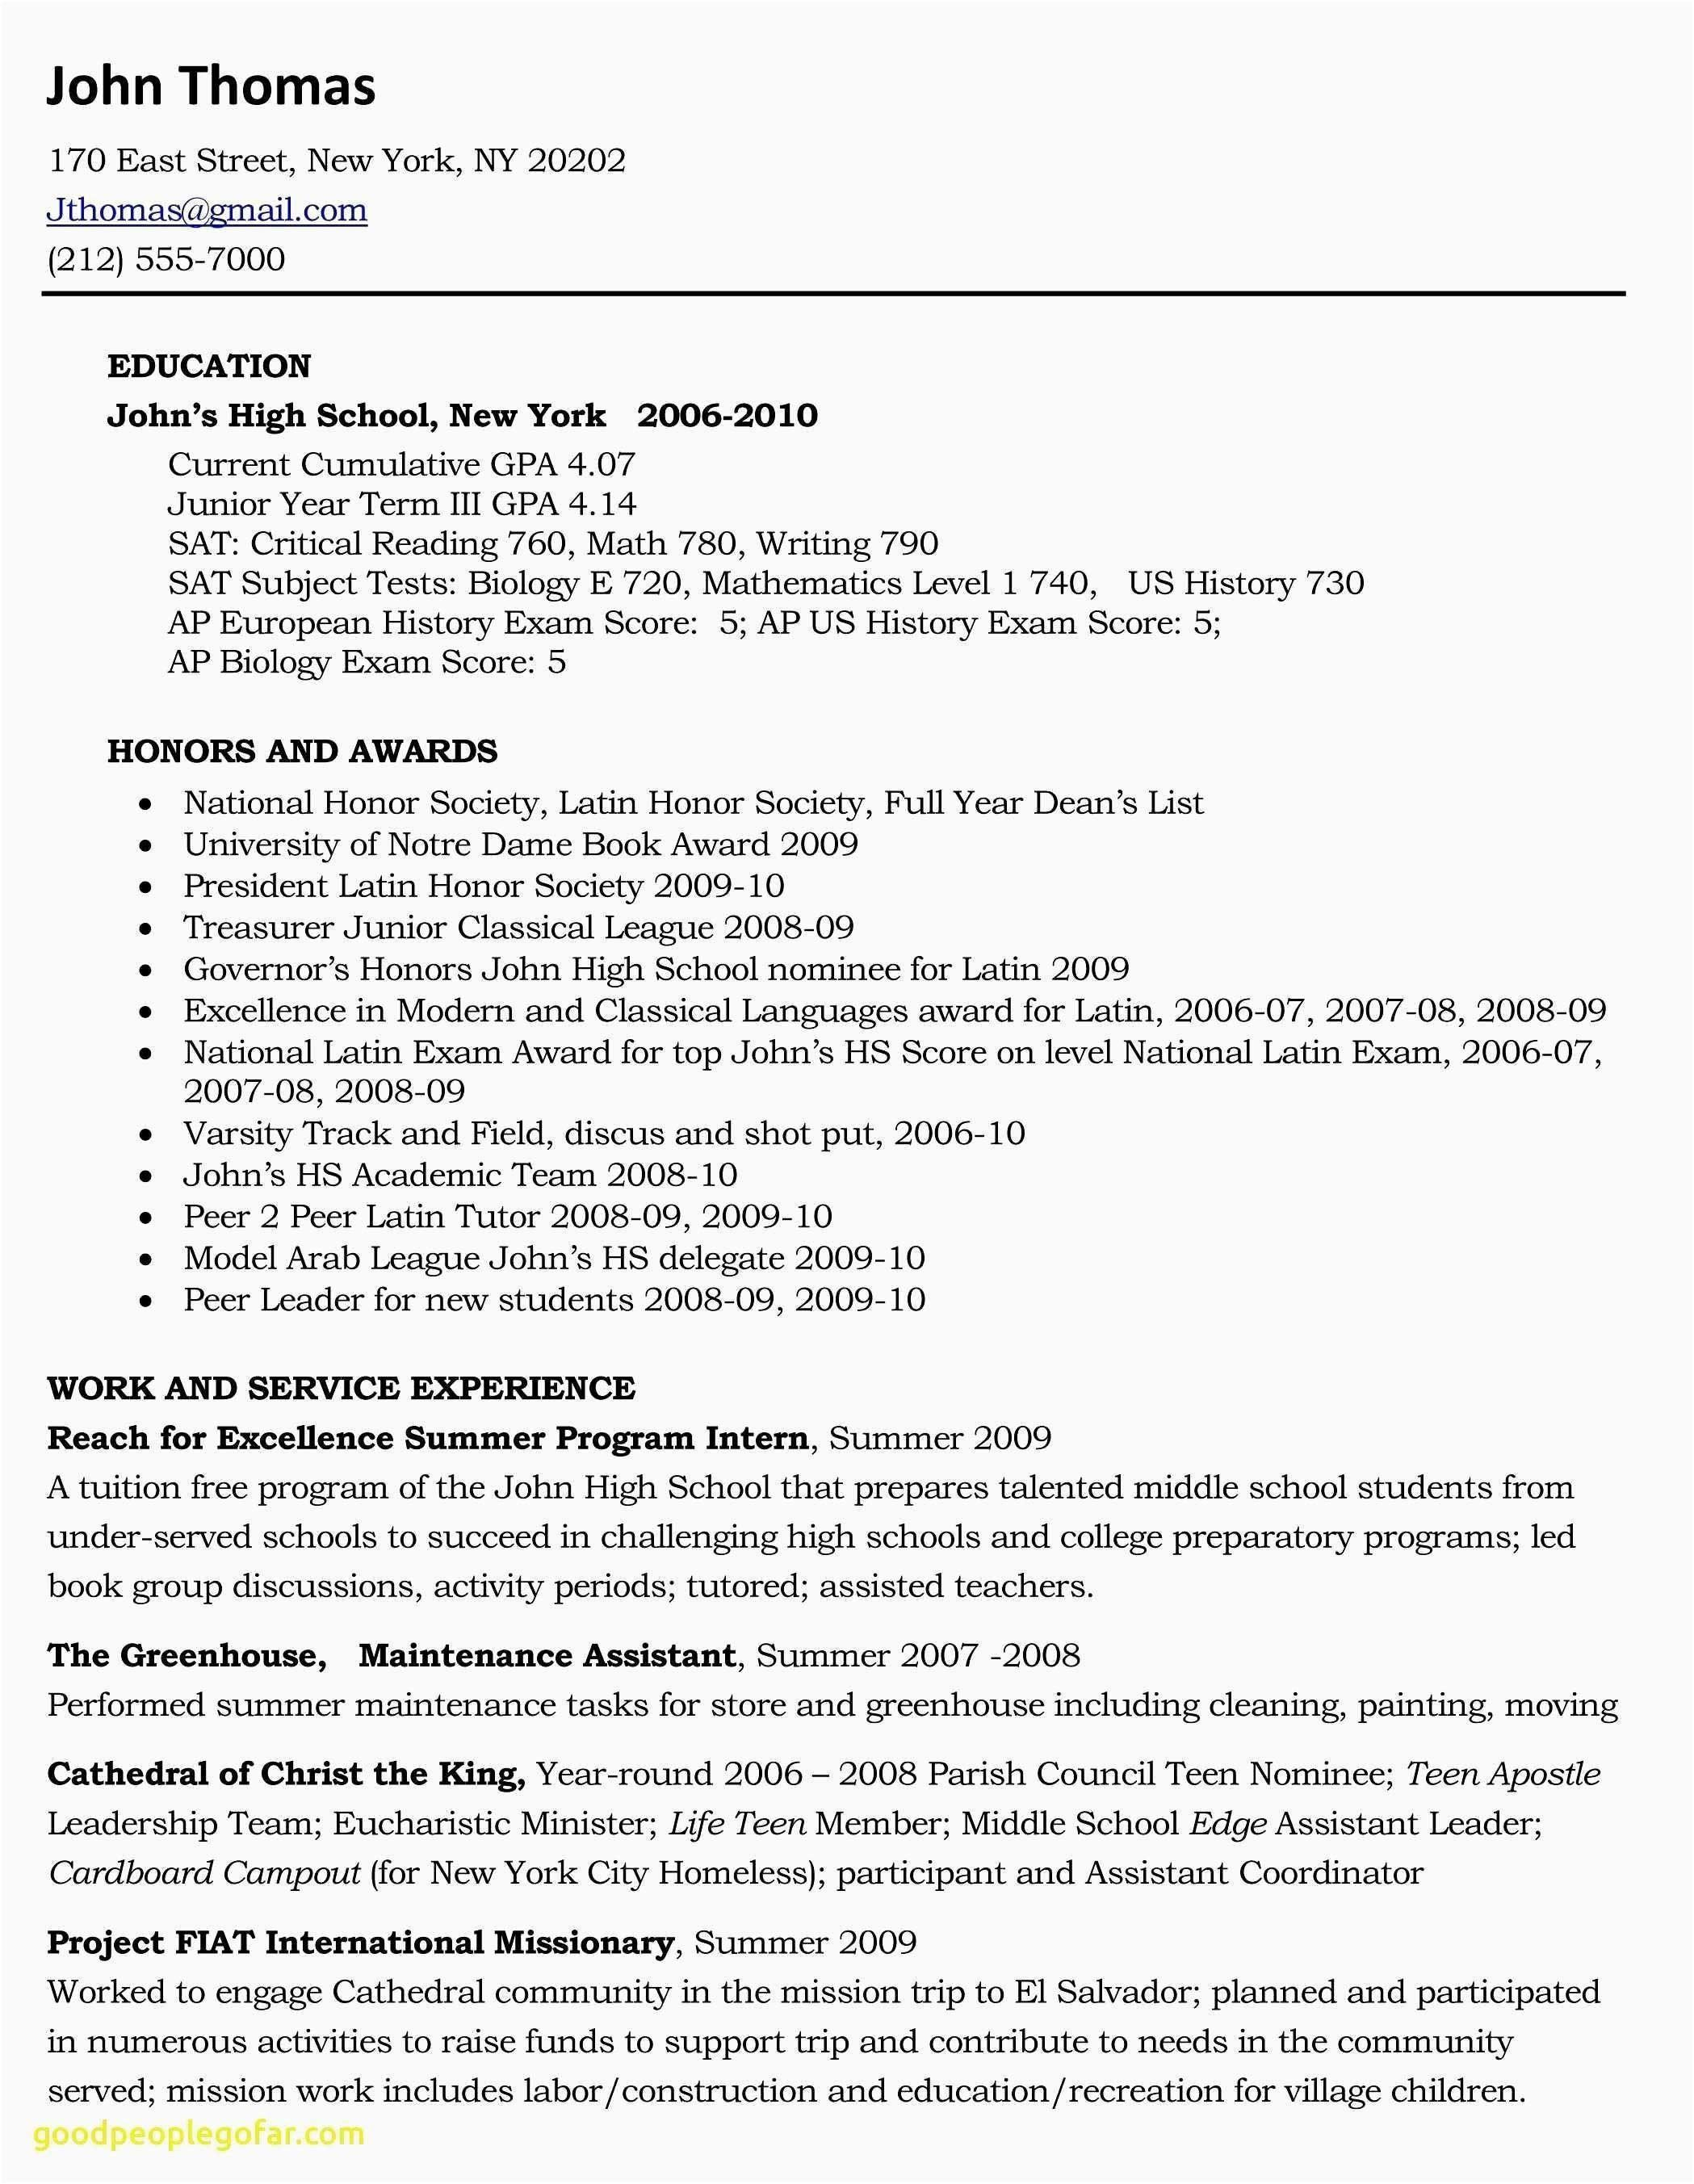 Programming Projects For Resume Elegant Build My Resume 650 838 How To Build My R Resume Writing Services High School History Teacher Resume Objective Examples